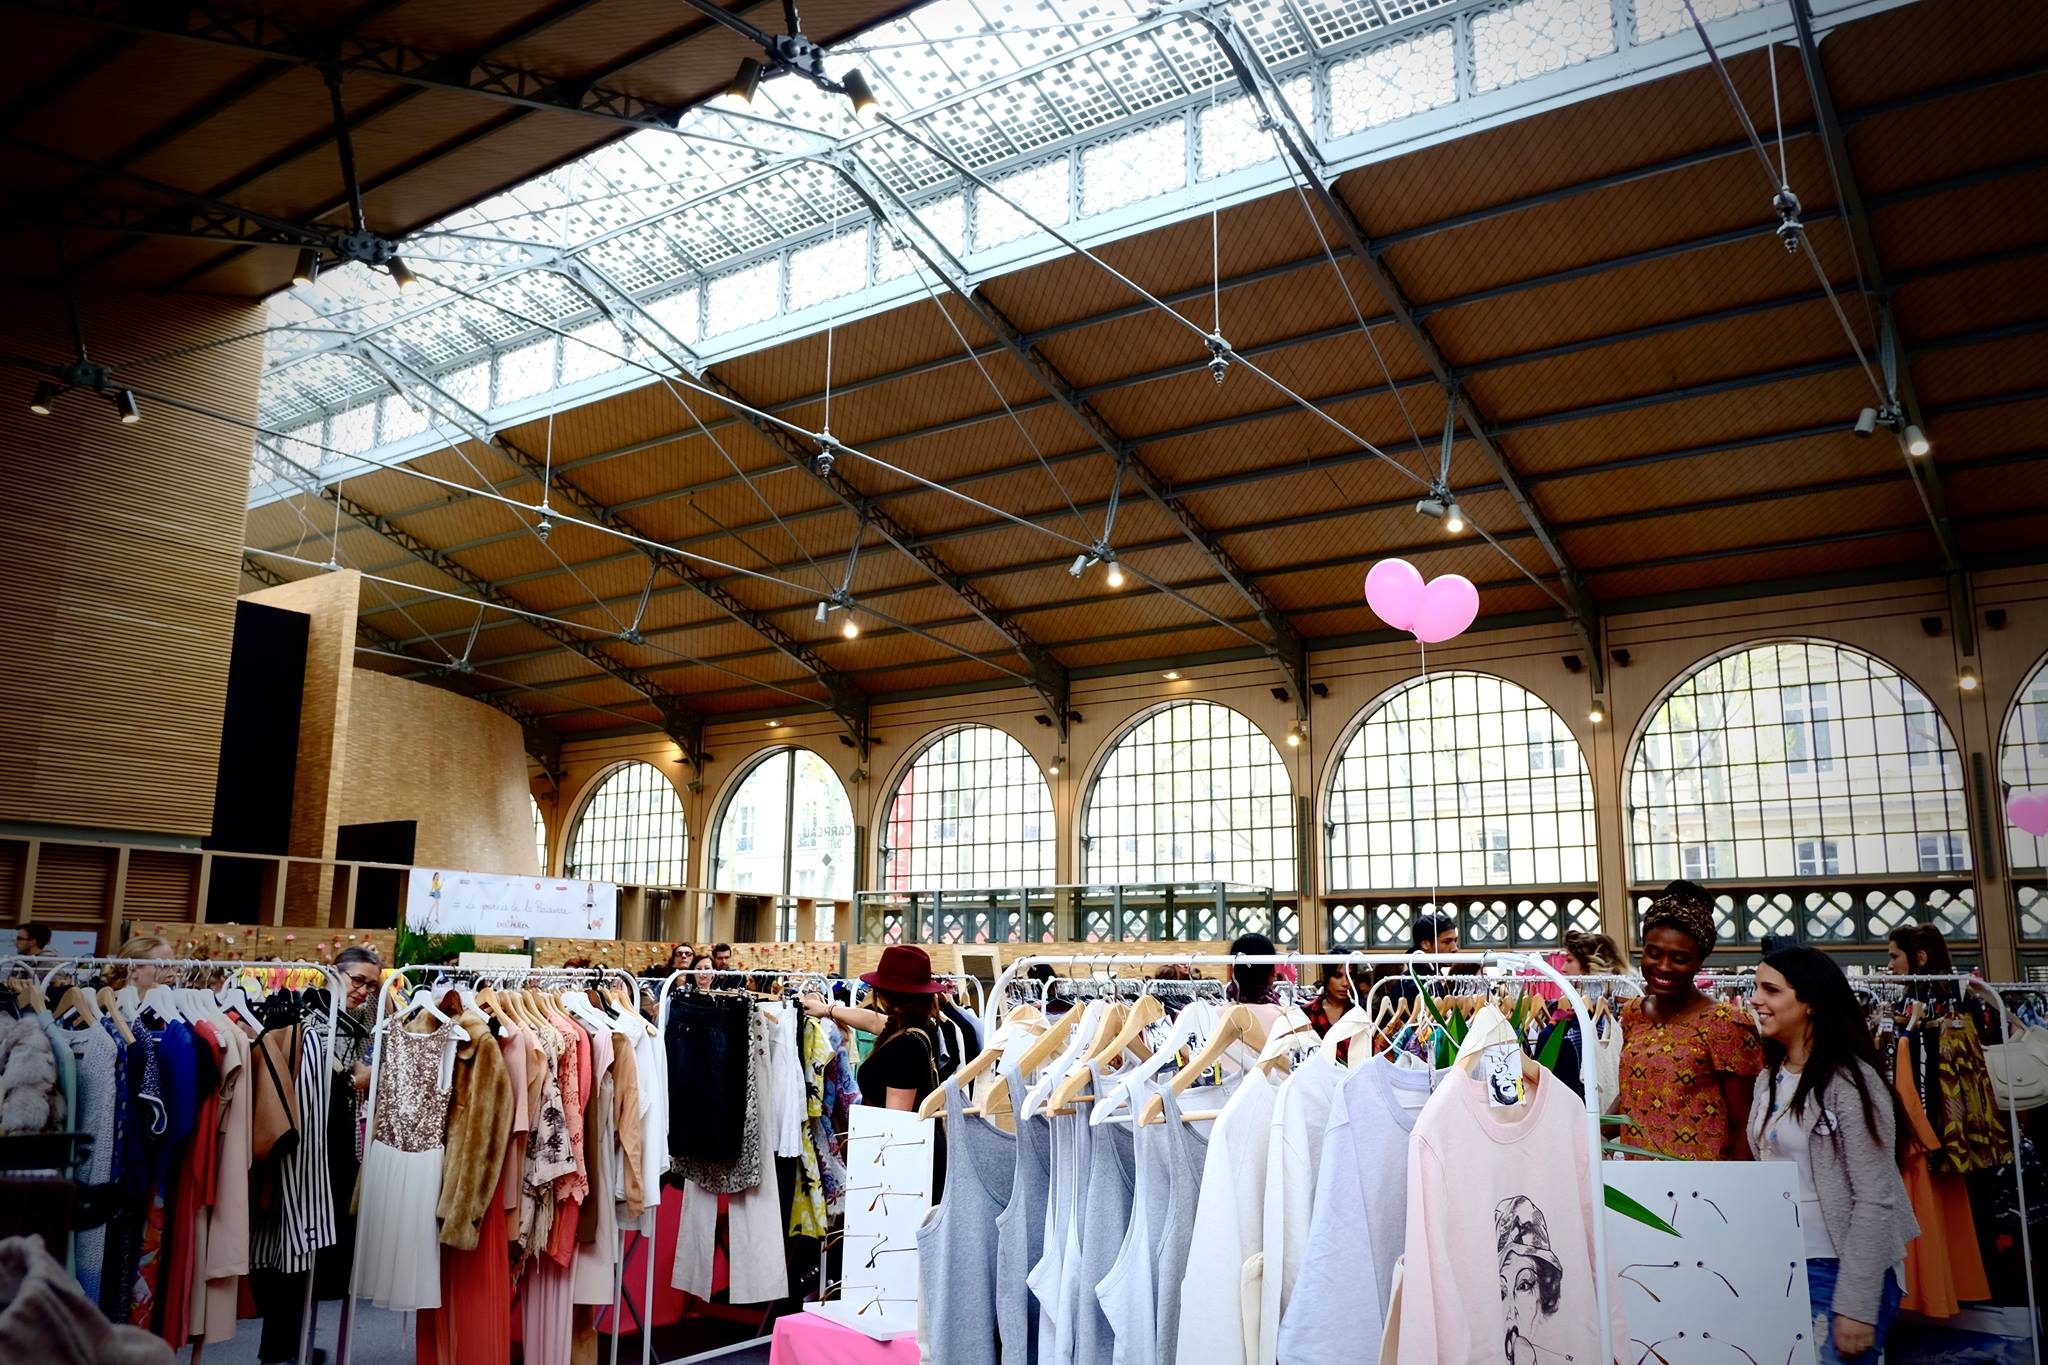 Fashion Flea Market Carreau du Temple